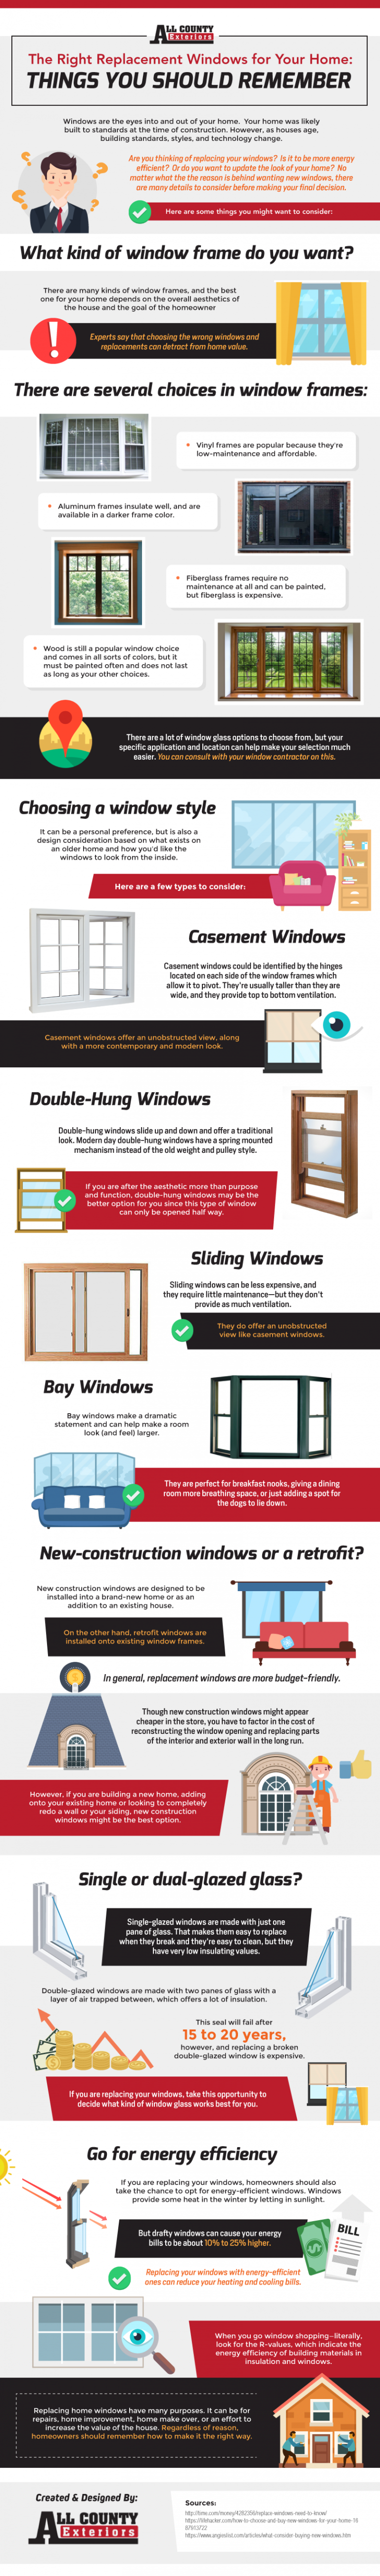 The Right Replacement Windows for Your Home (Infographic)